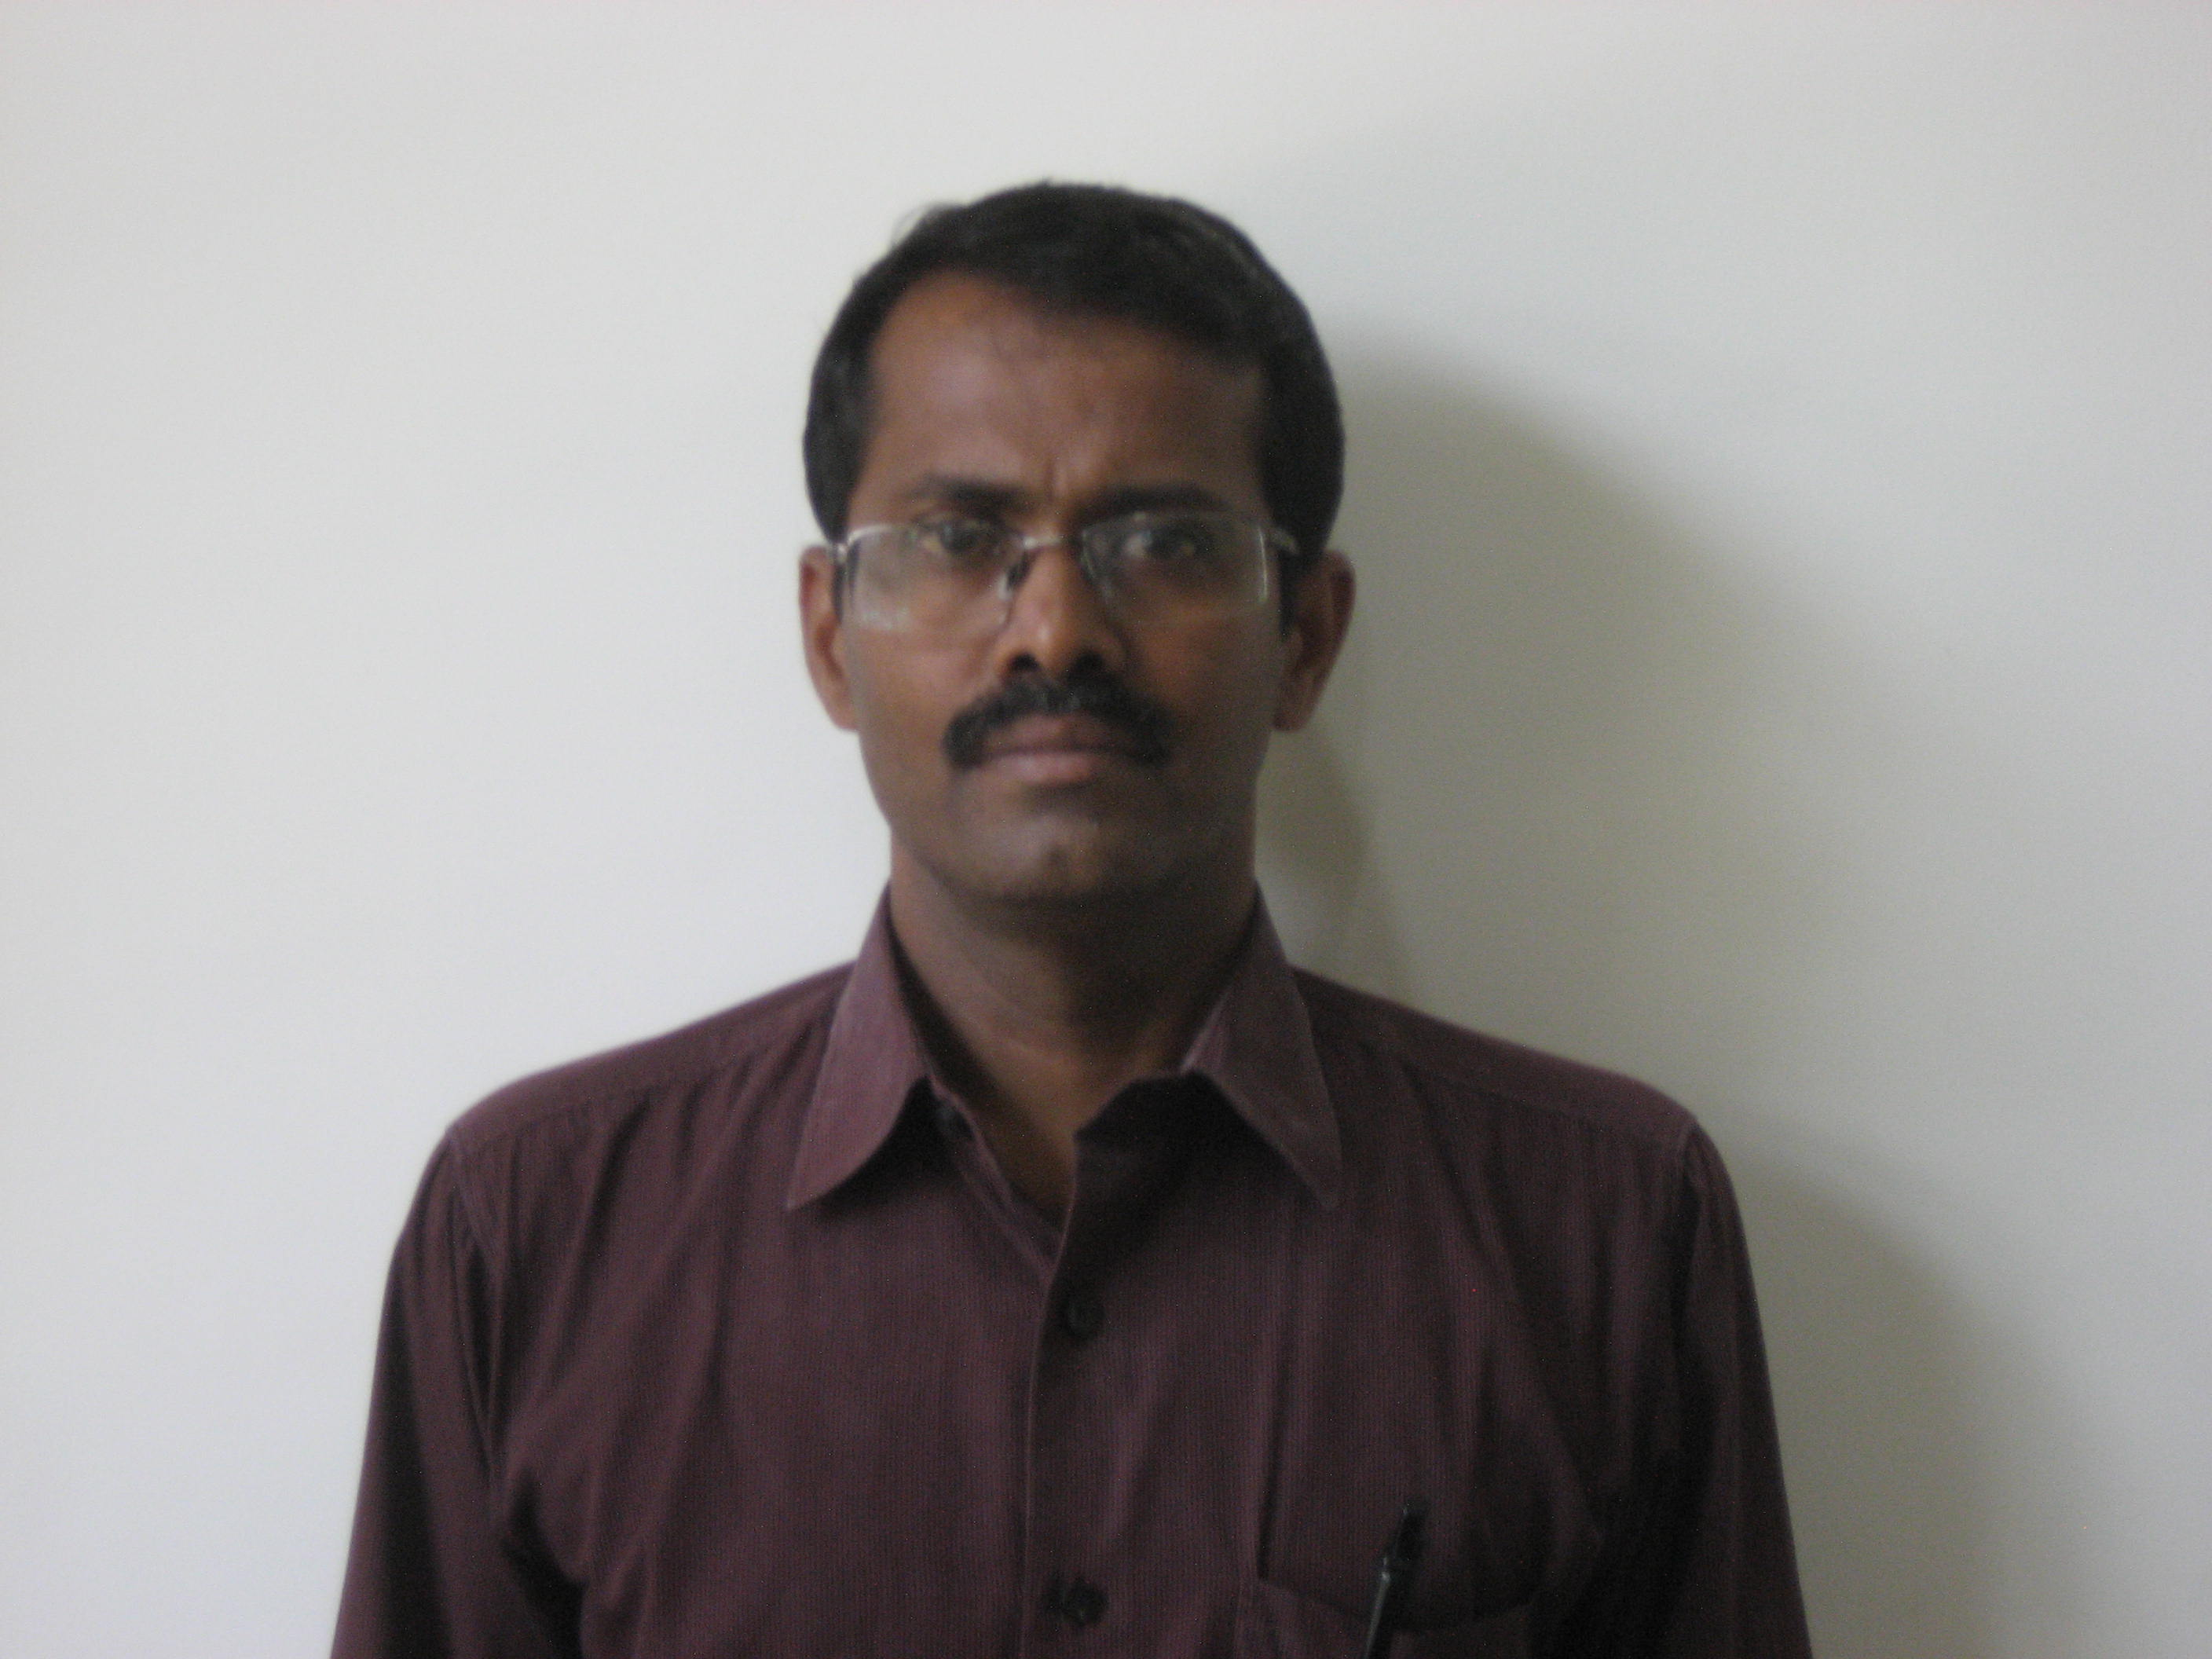 Dr.P.Muthukumar is the Medical director/Chairman of Harini shravan Hospital.He is the consultant pediatrician/neonatologist practising in this hospital.He also visits other hospitals like KG Hospital,Kurinji hospital etc.